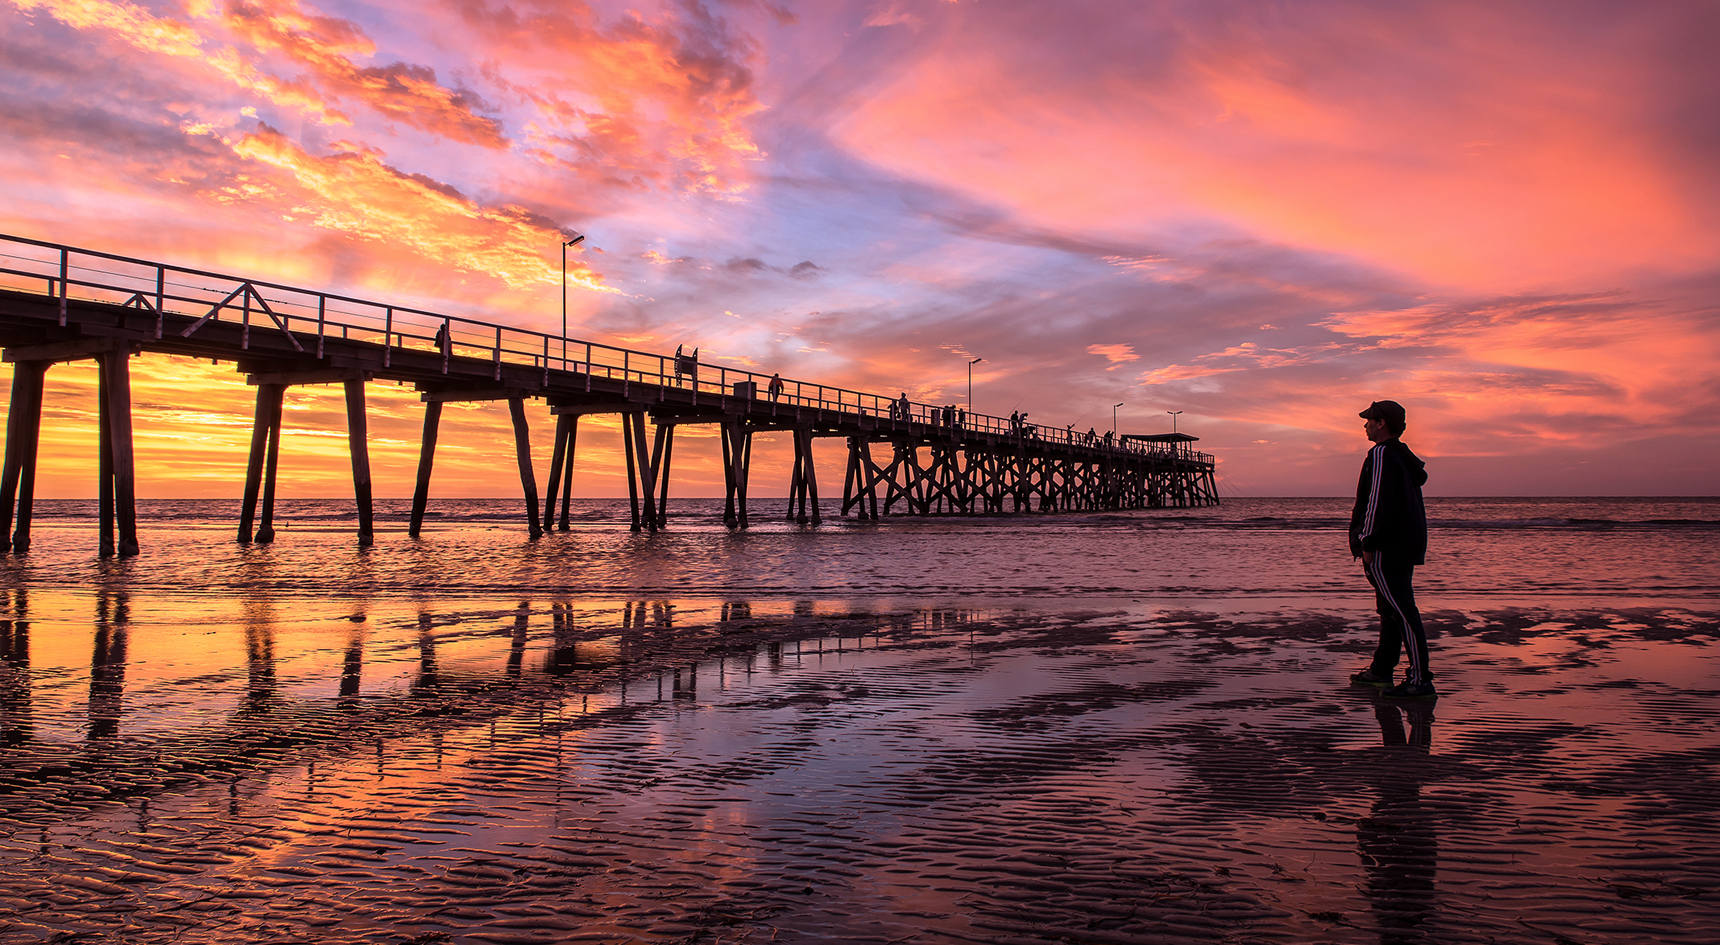 Sun sets over Largs Bay jetty.